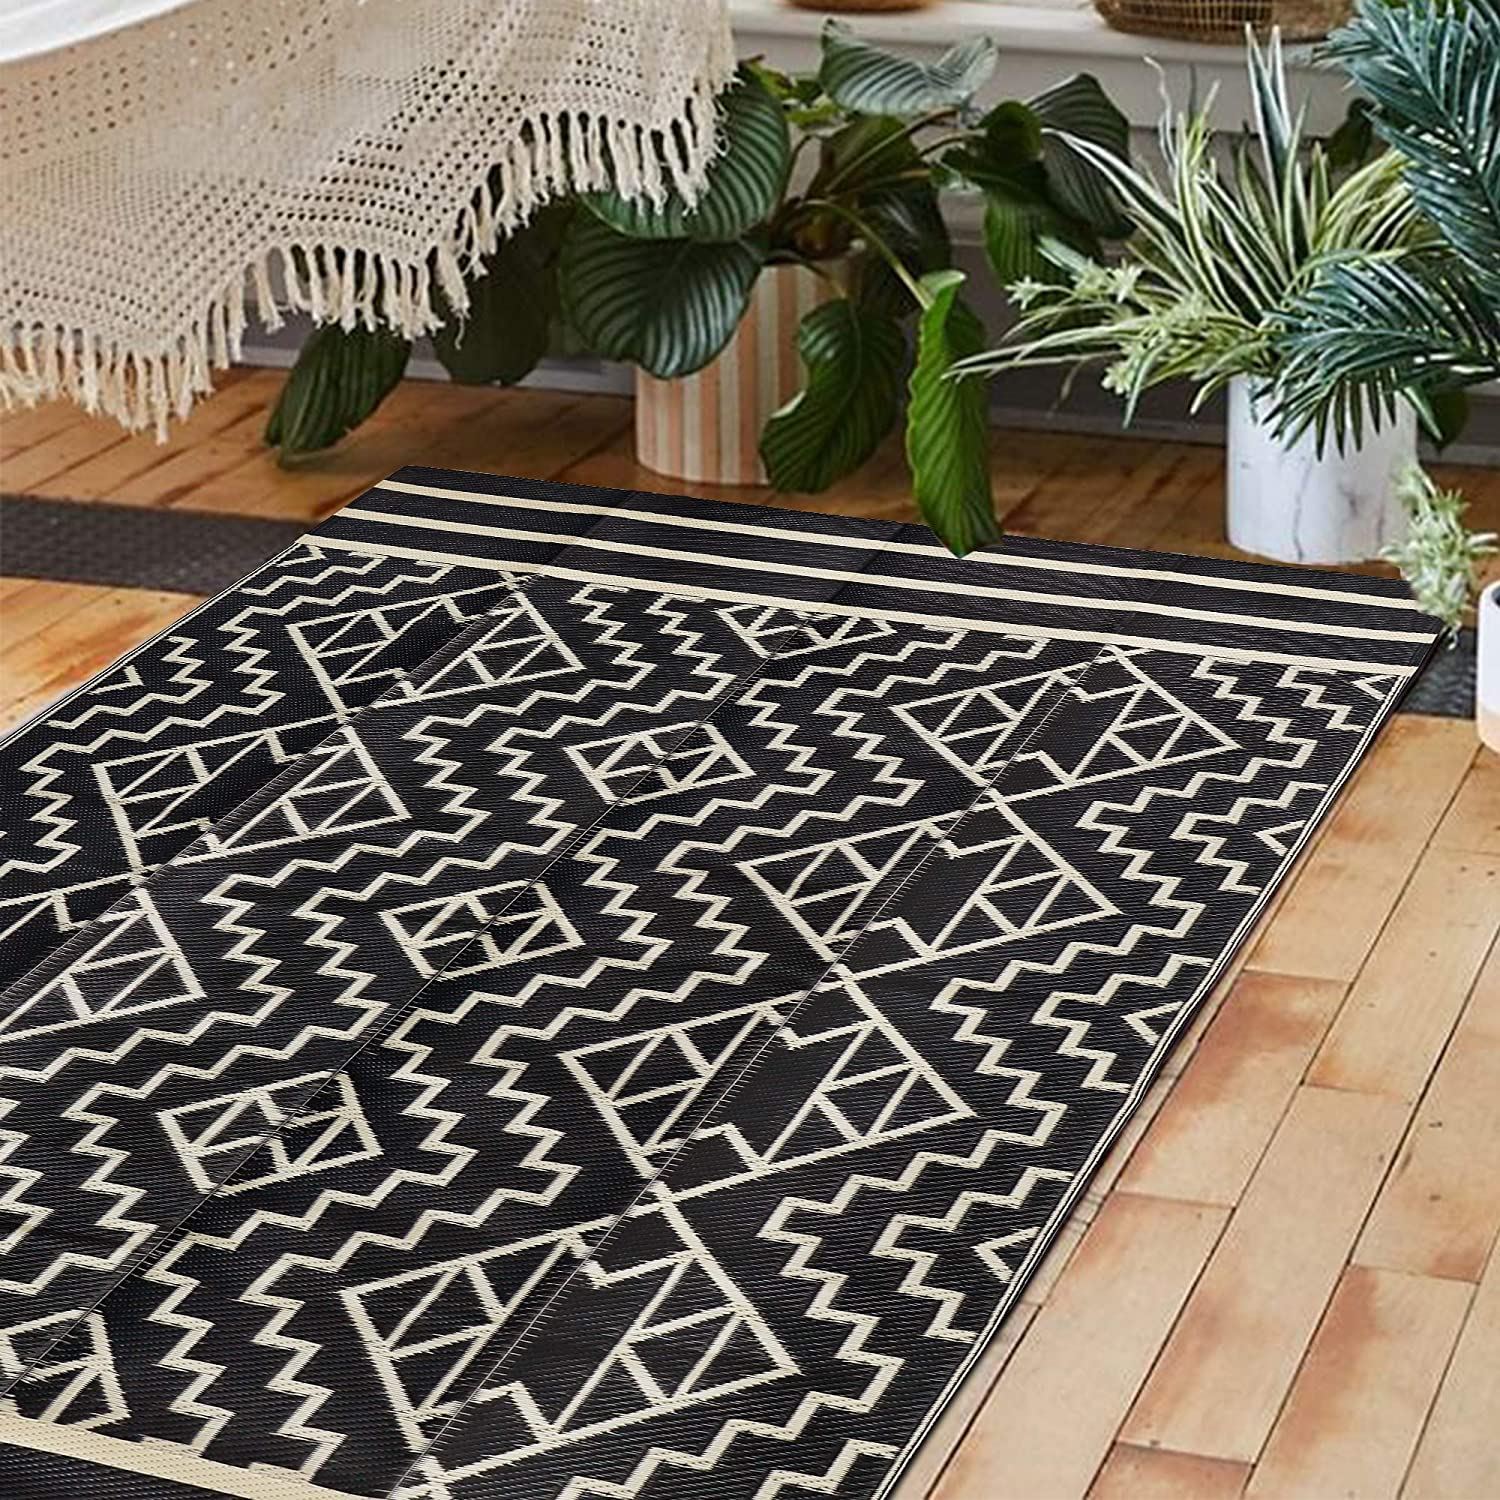 SAND MINE Reversible Mats, Plastic Straw Rug, Modern Area Rug, Large Floor Mat and Rug for Outdoors, RV, Patio, Backyard, Deck, Picnic, Beach, Trailer, Camping (5' x 8', Black & Cream)